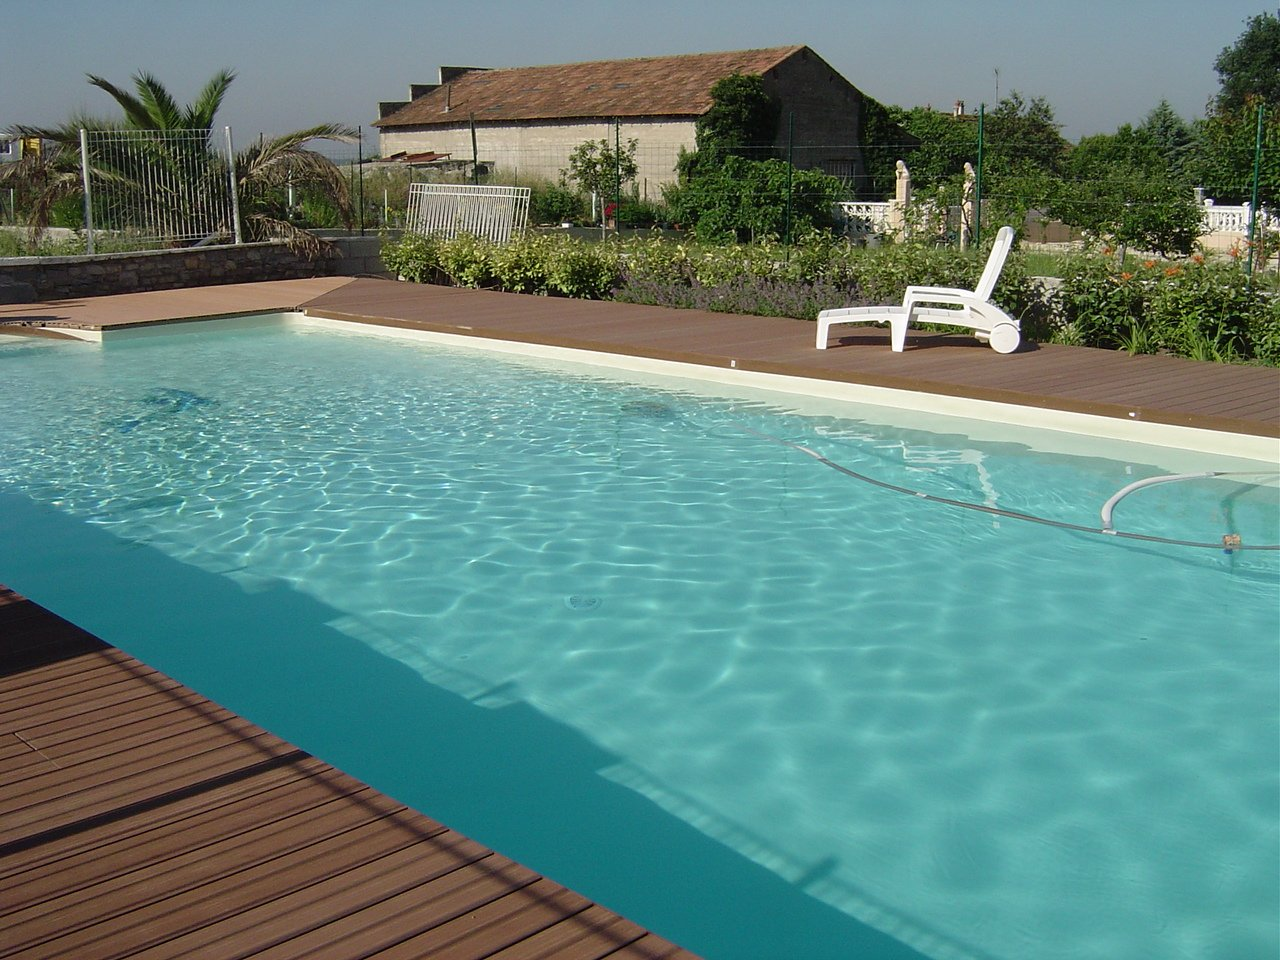 Liner piscine couleur sable for Liner piscine couleur sable